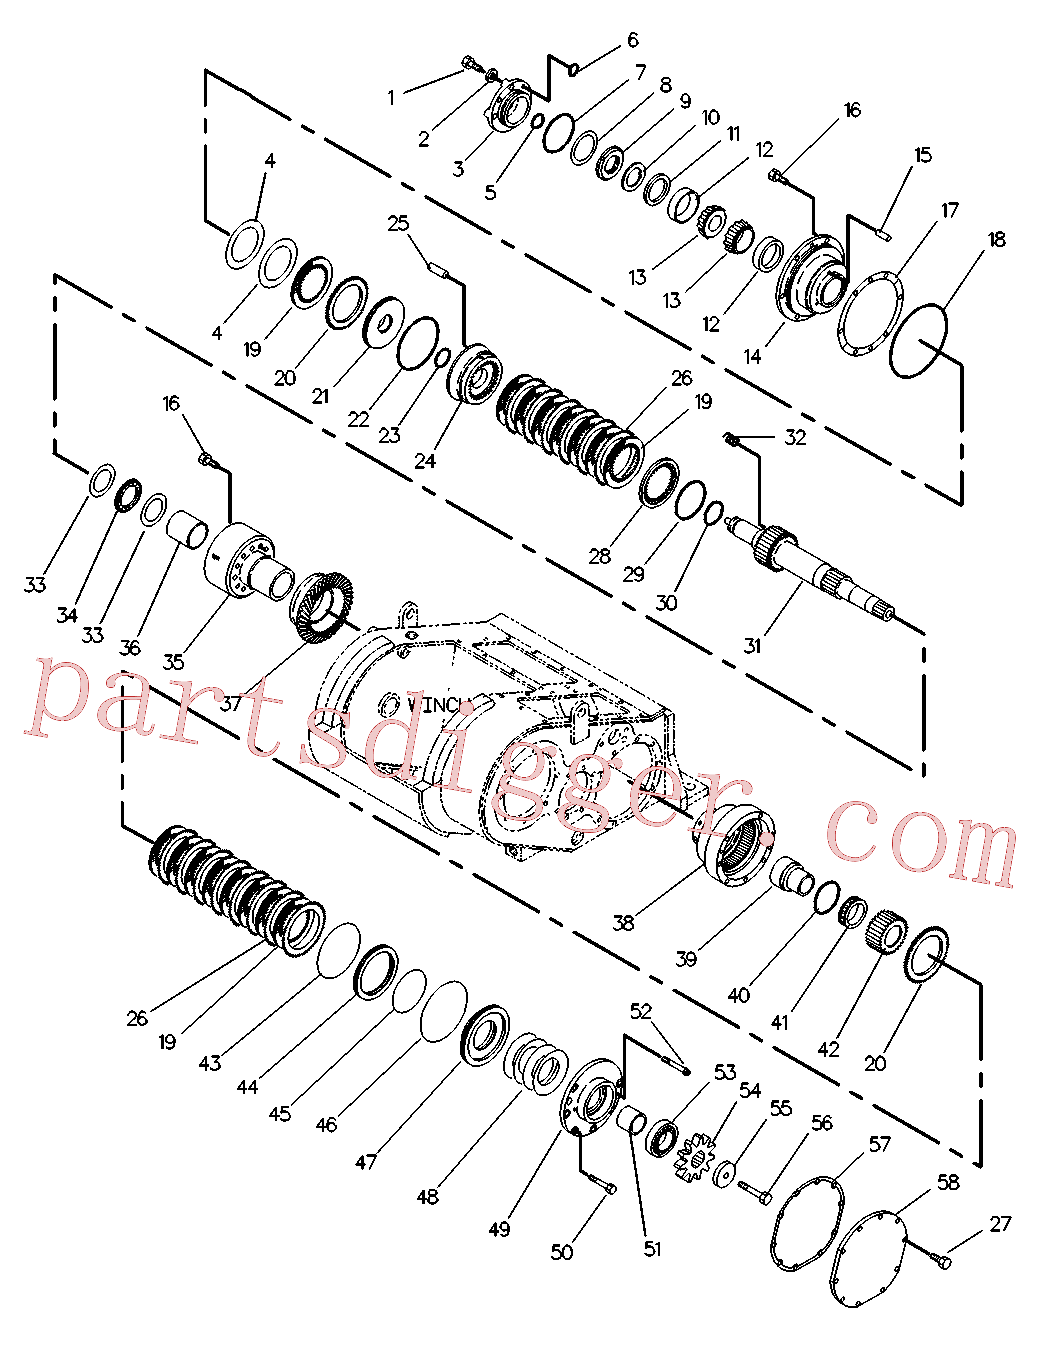 CAT 5H-6734 for D5C Track Type Tractor(TTT) implements 3T-4959 Assembly